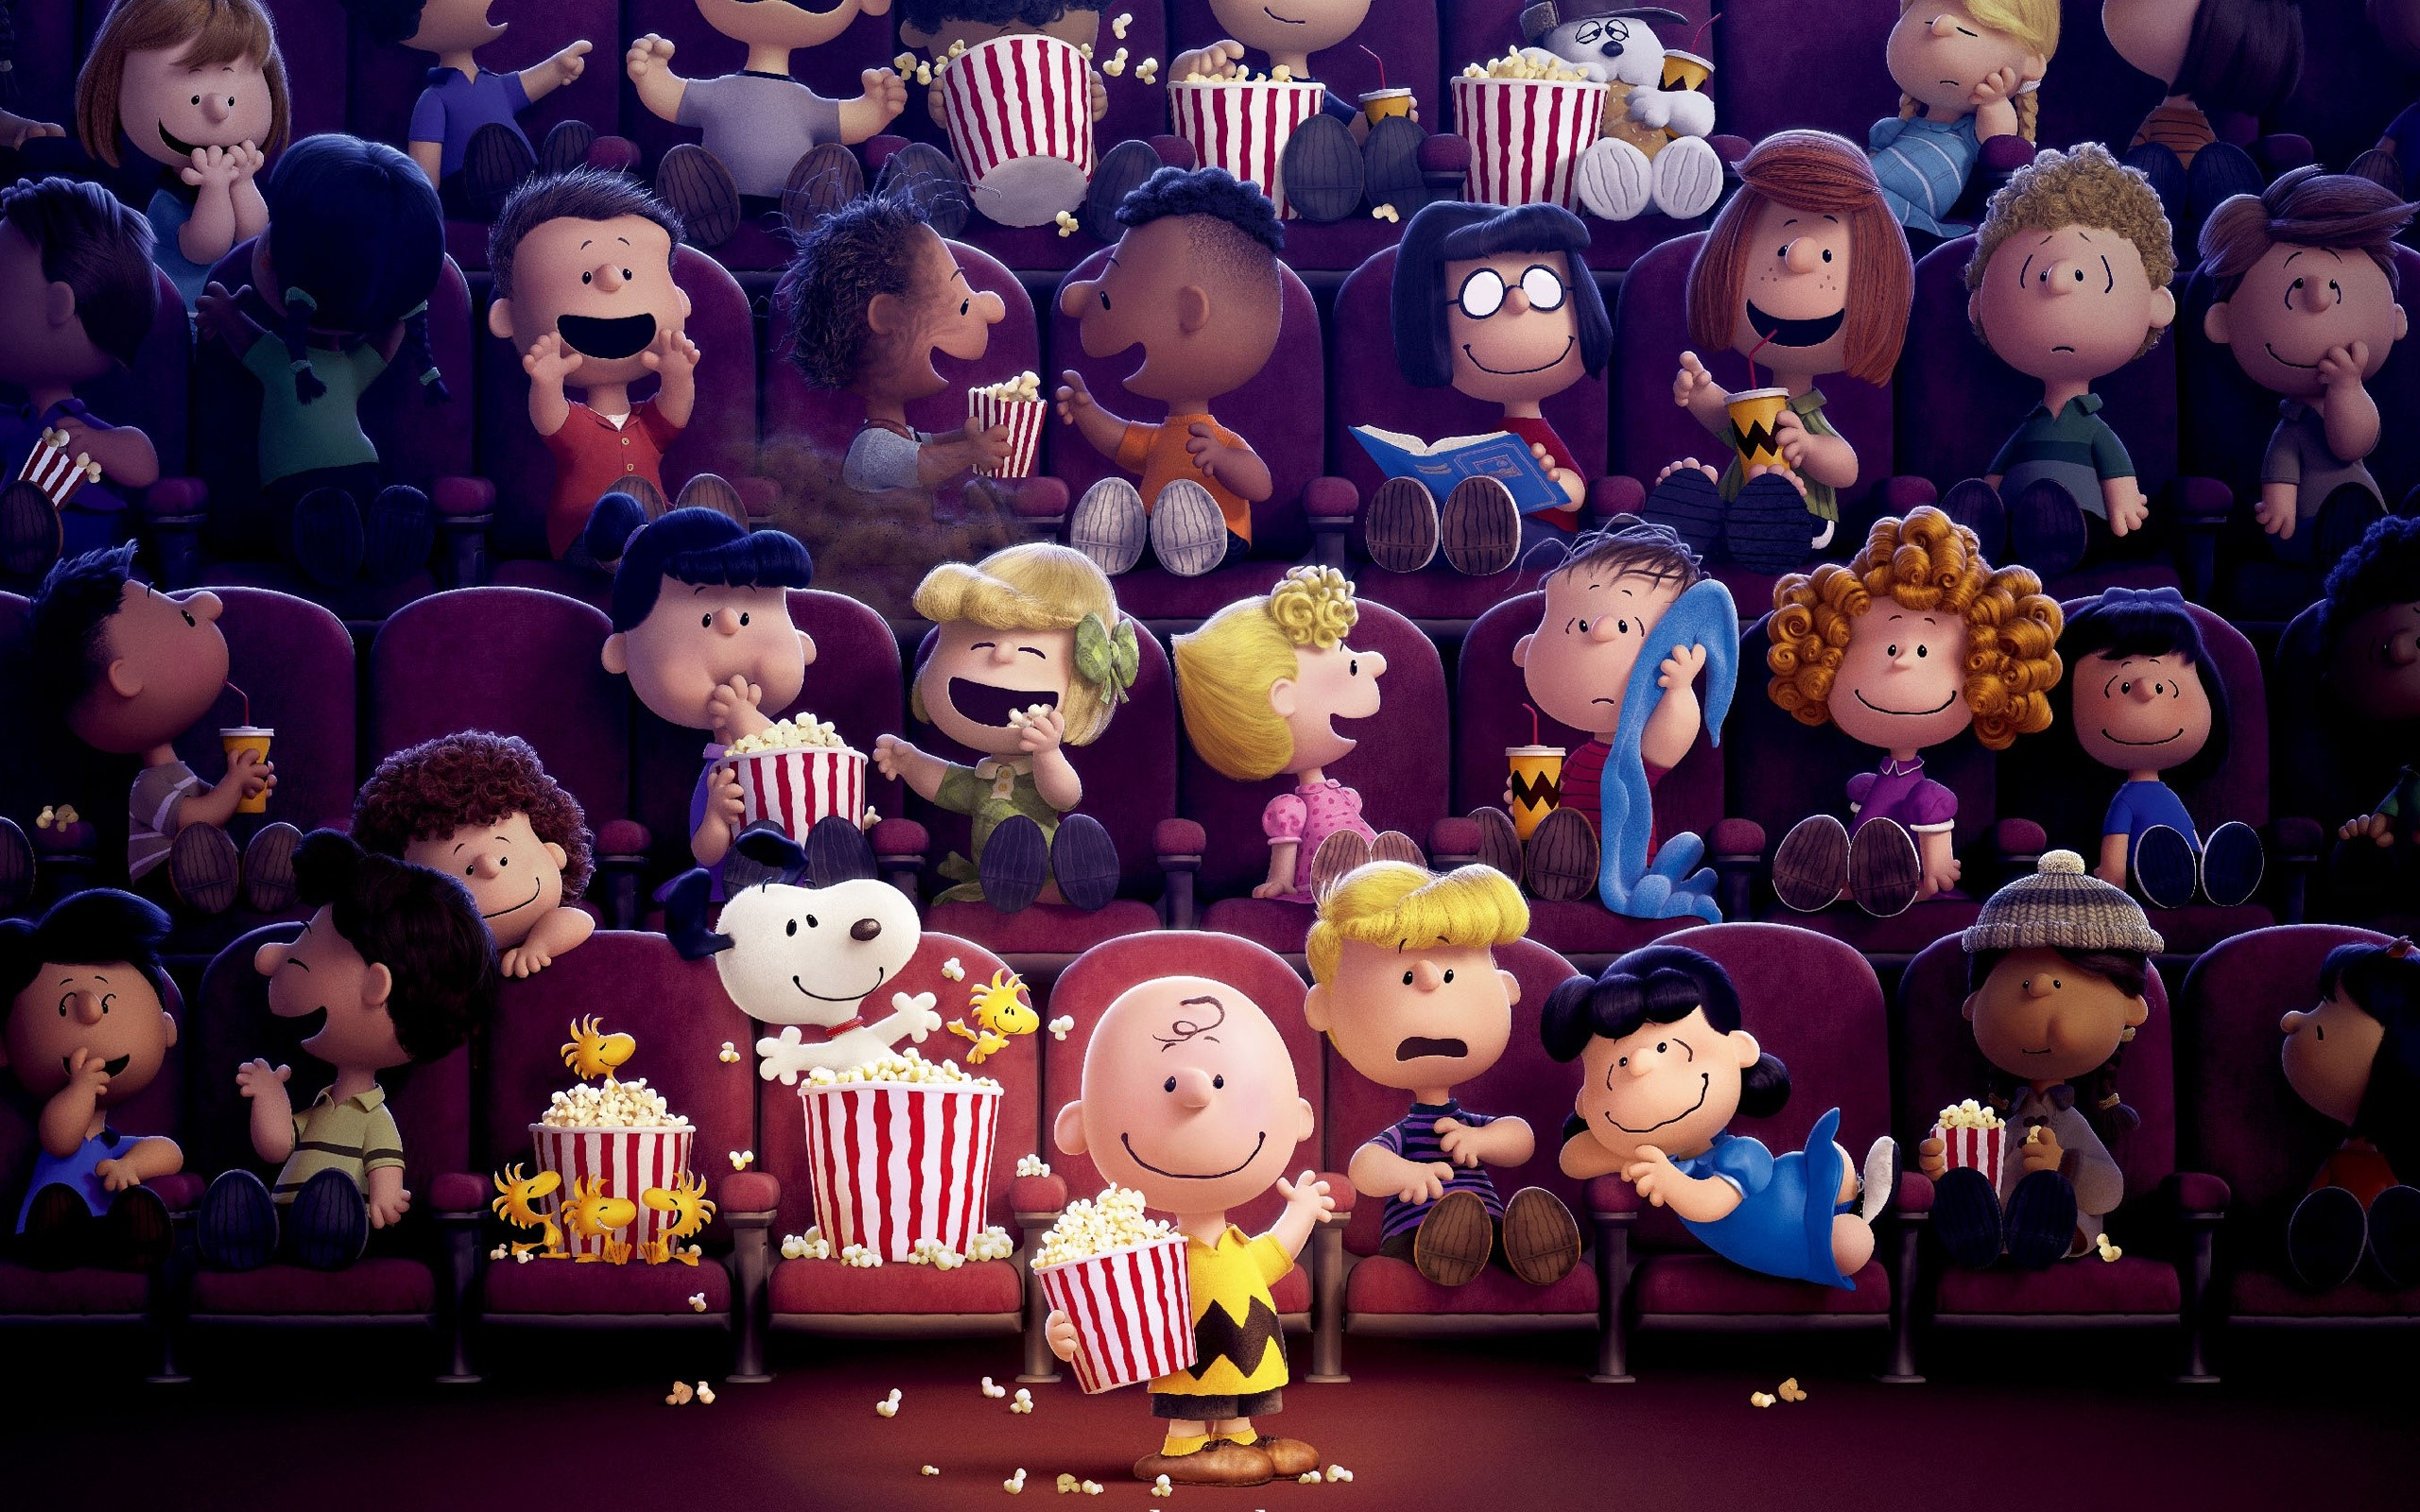 Wallpaper Movie Snoopy and Charlie Brown: Peanuts